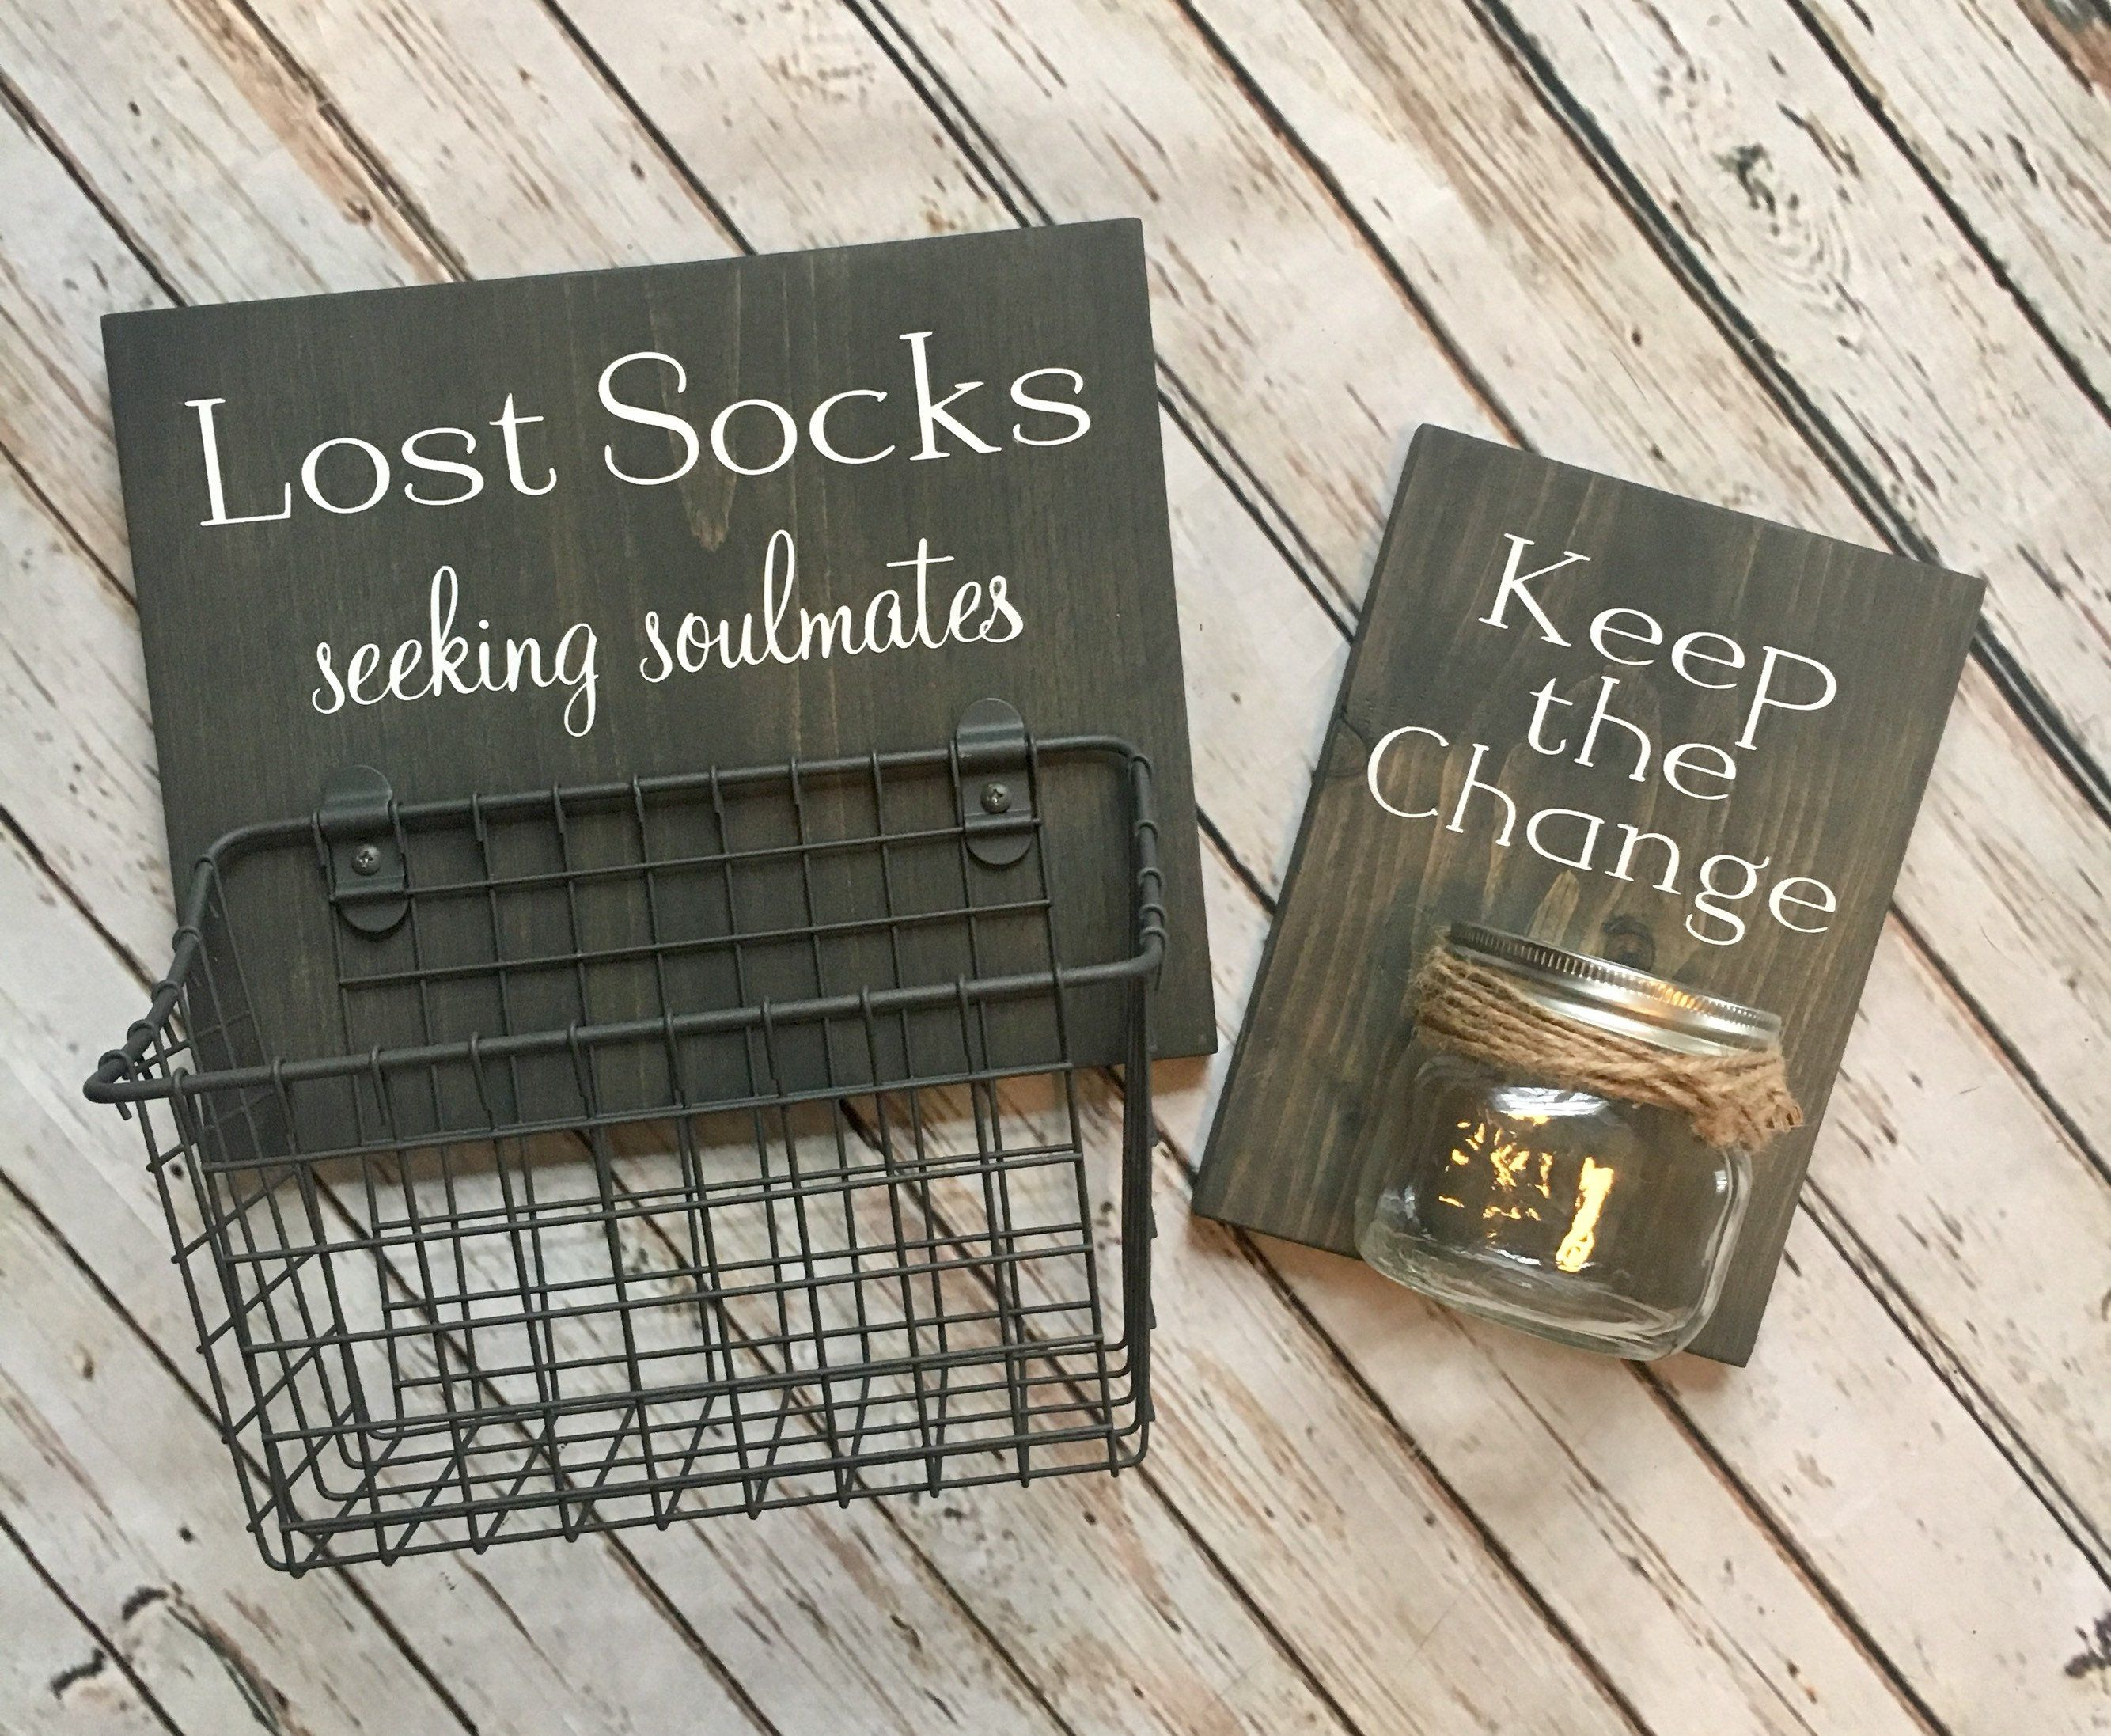 Laundry Room Sign Combo | Keep the Change AND Lost Socks - Seeking Soulmates (or Solemates) | wood sign with attached glass jar coin holder #remodelingorroomdesign